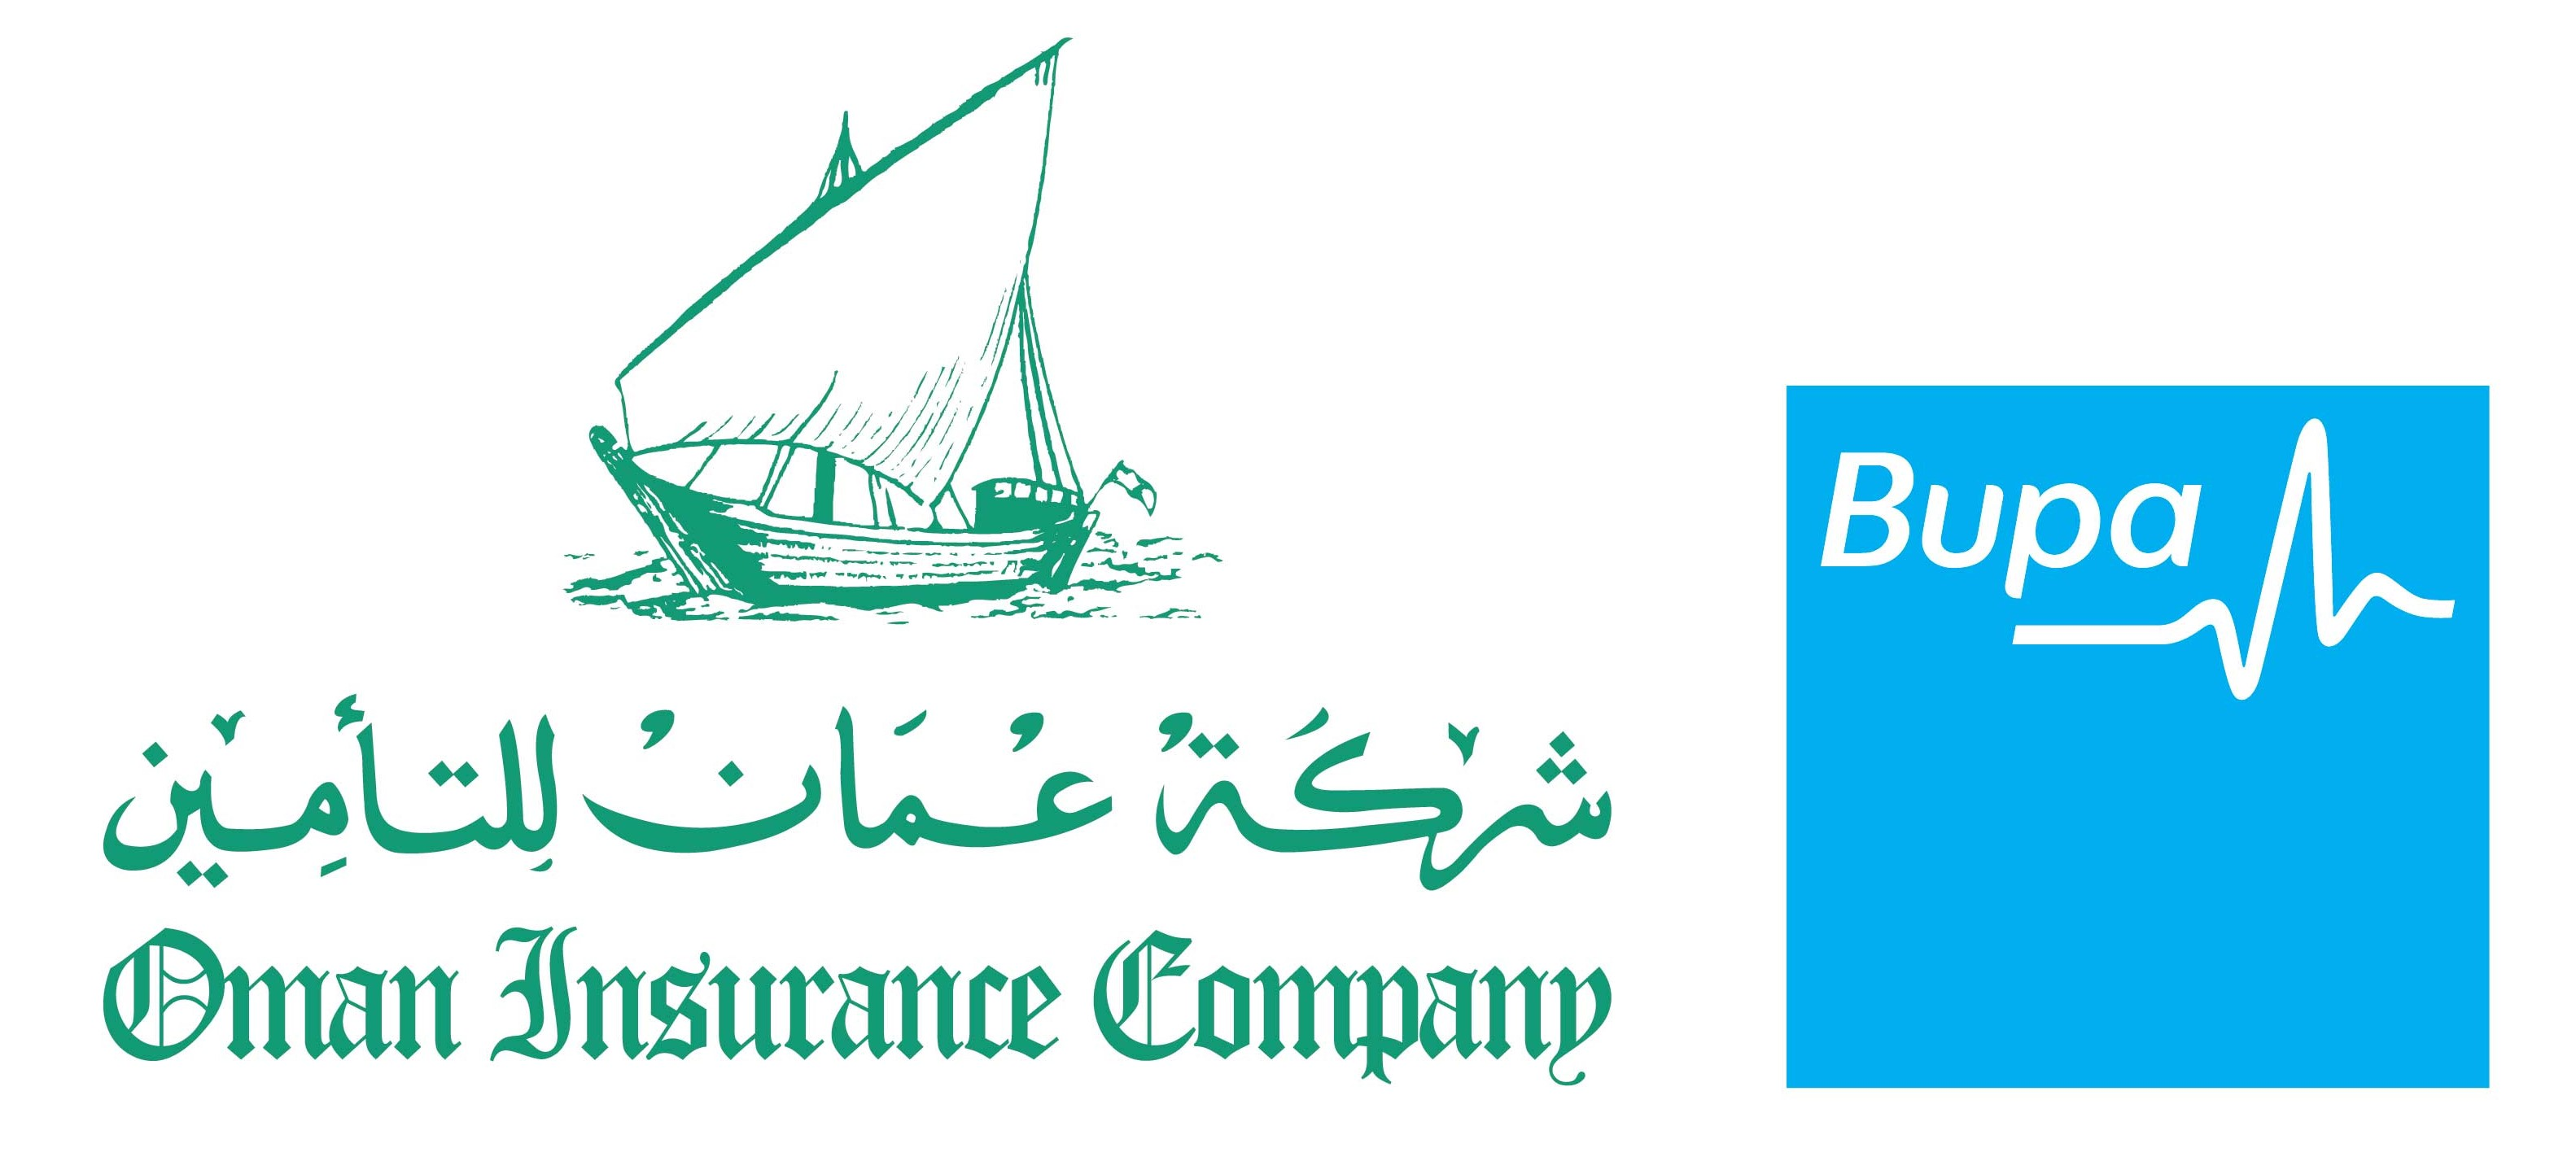 Oman Insurance Company & Bupa Global